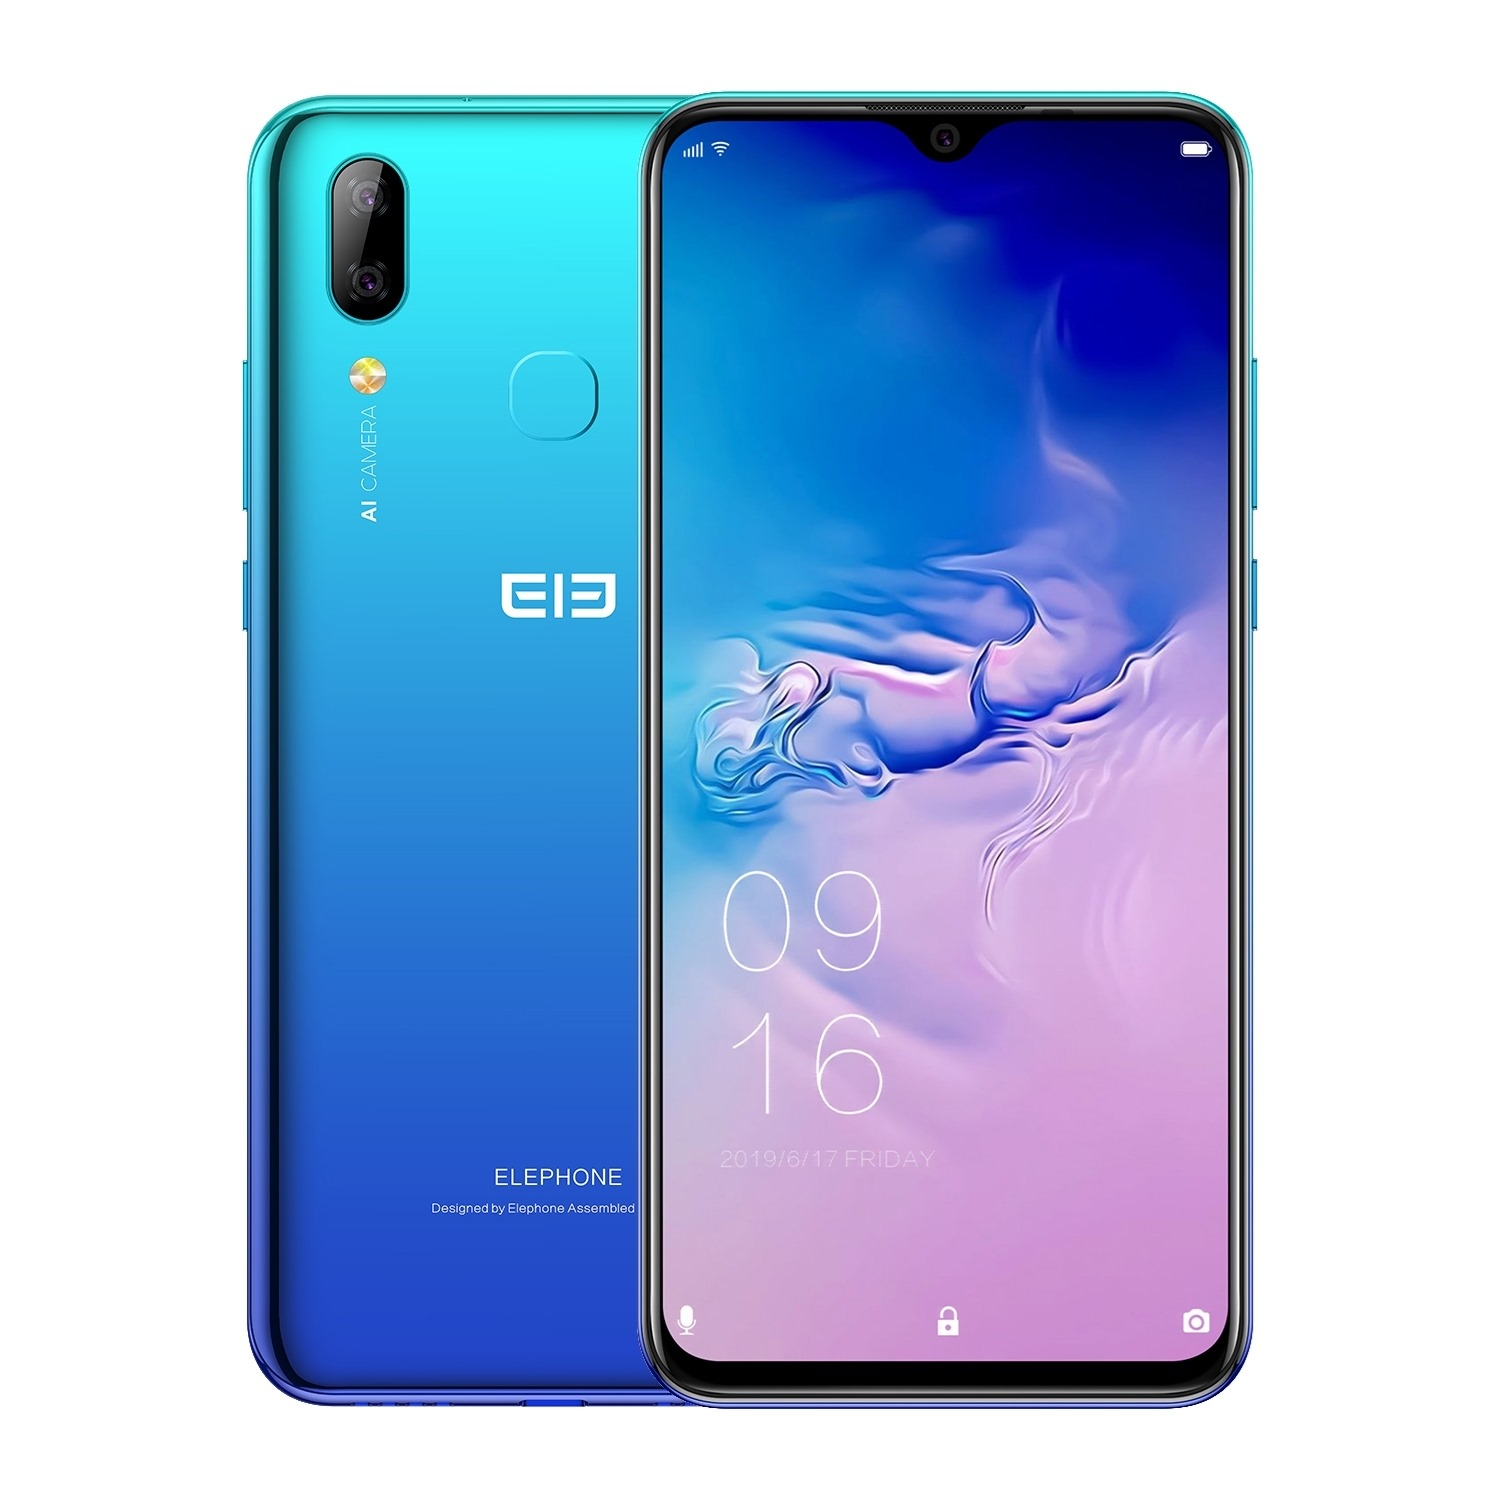 Elephone A6 Max 4G Smartphone 6.53 Inch Android 9.0 4GB RAM 64GB ROM MT6762V Quad Core 20MP Cameras OTG NFC Mobile Phone